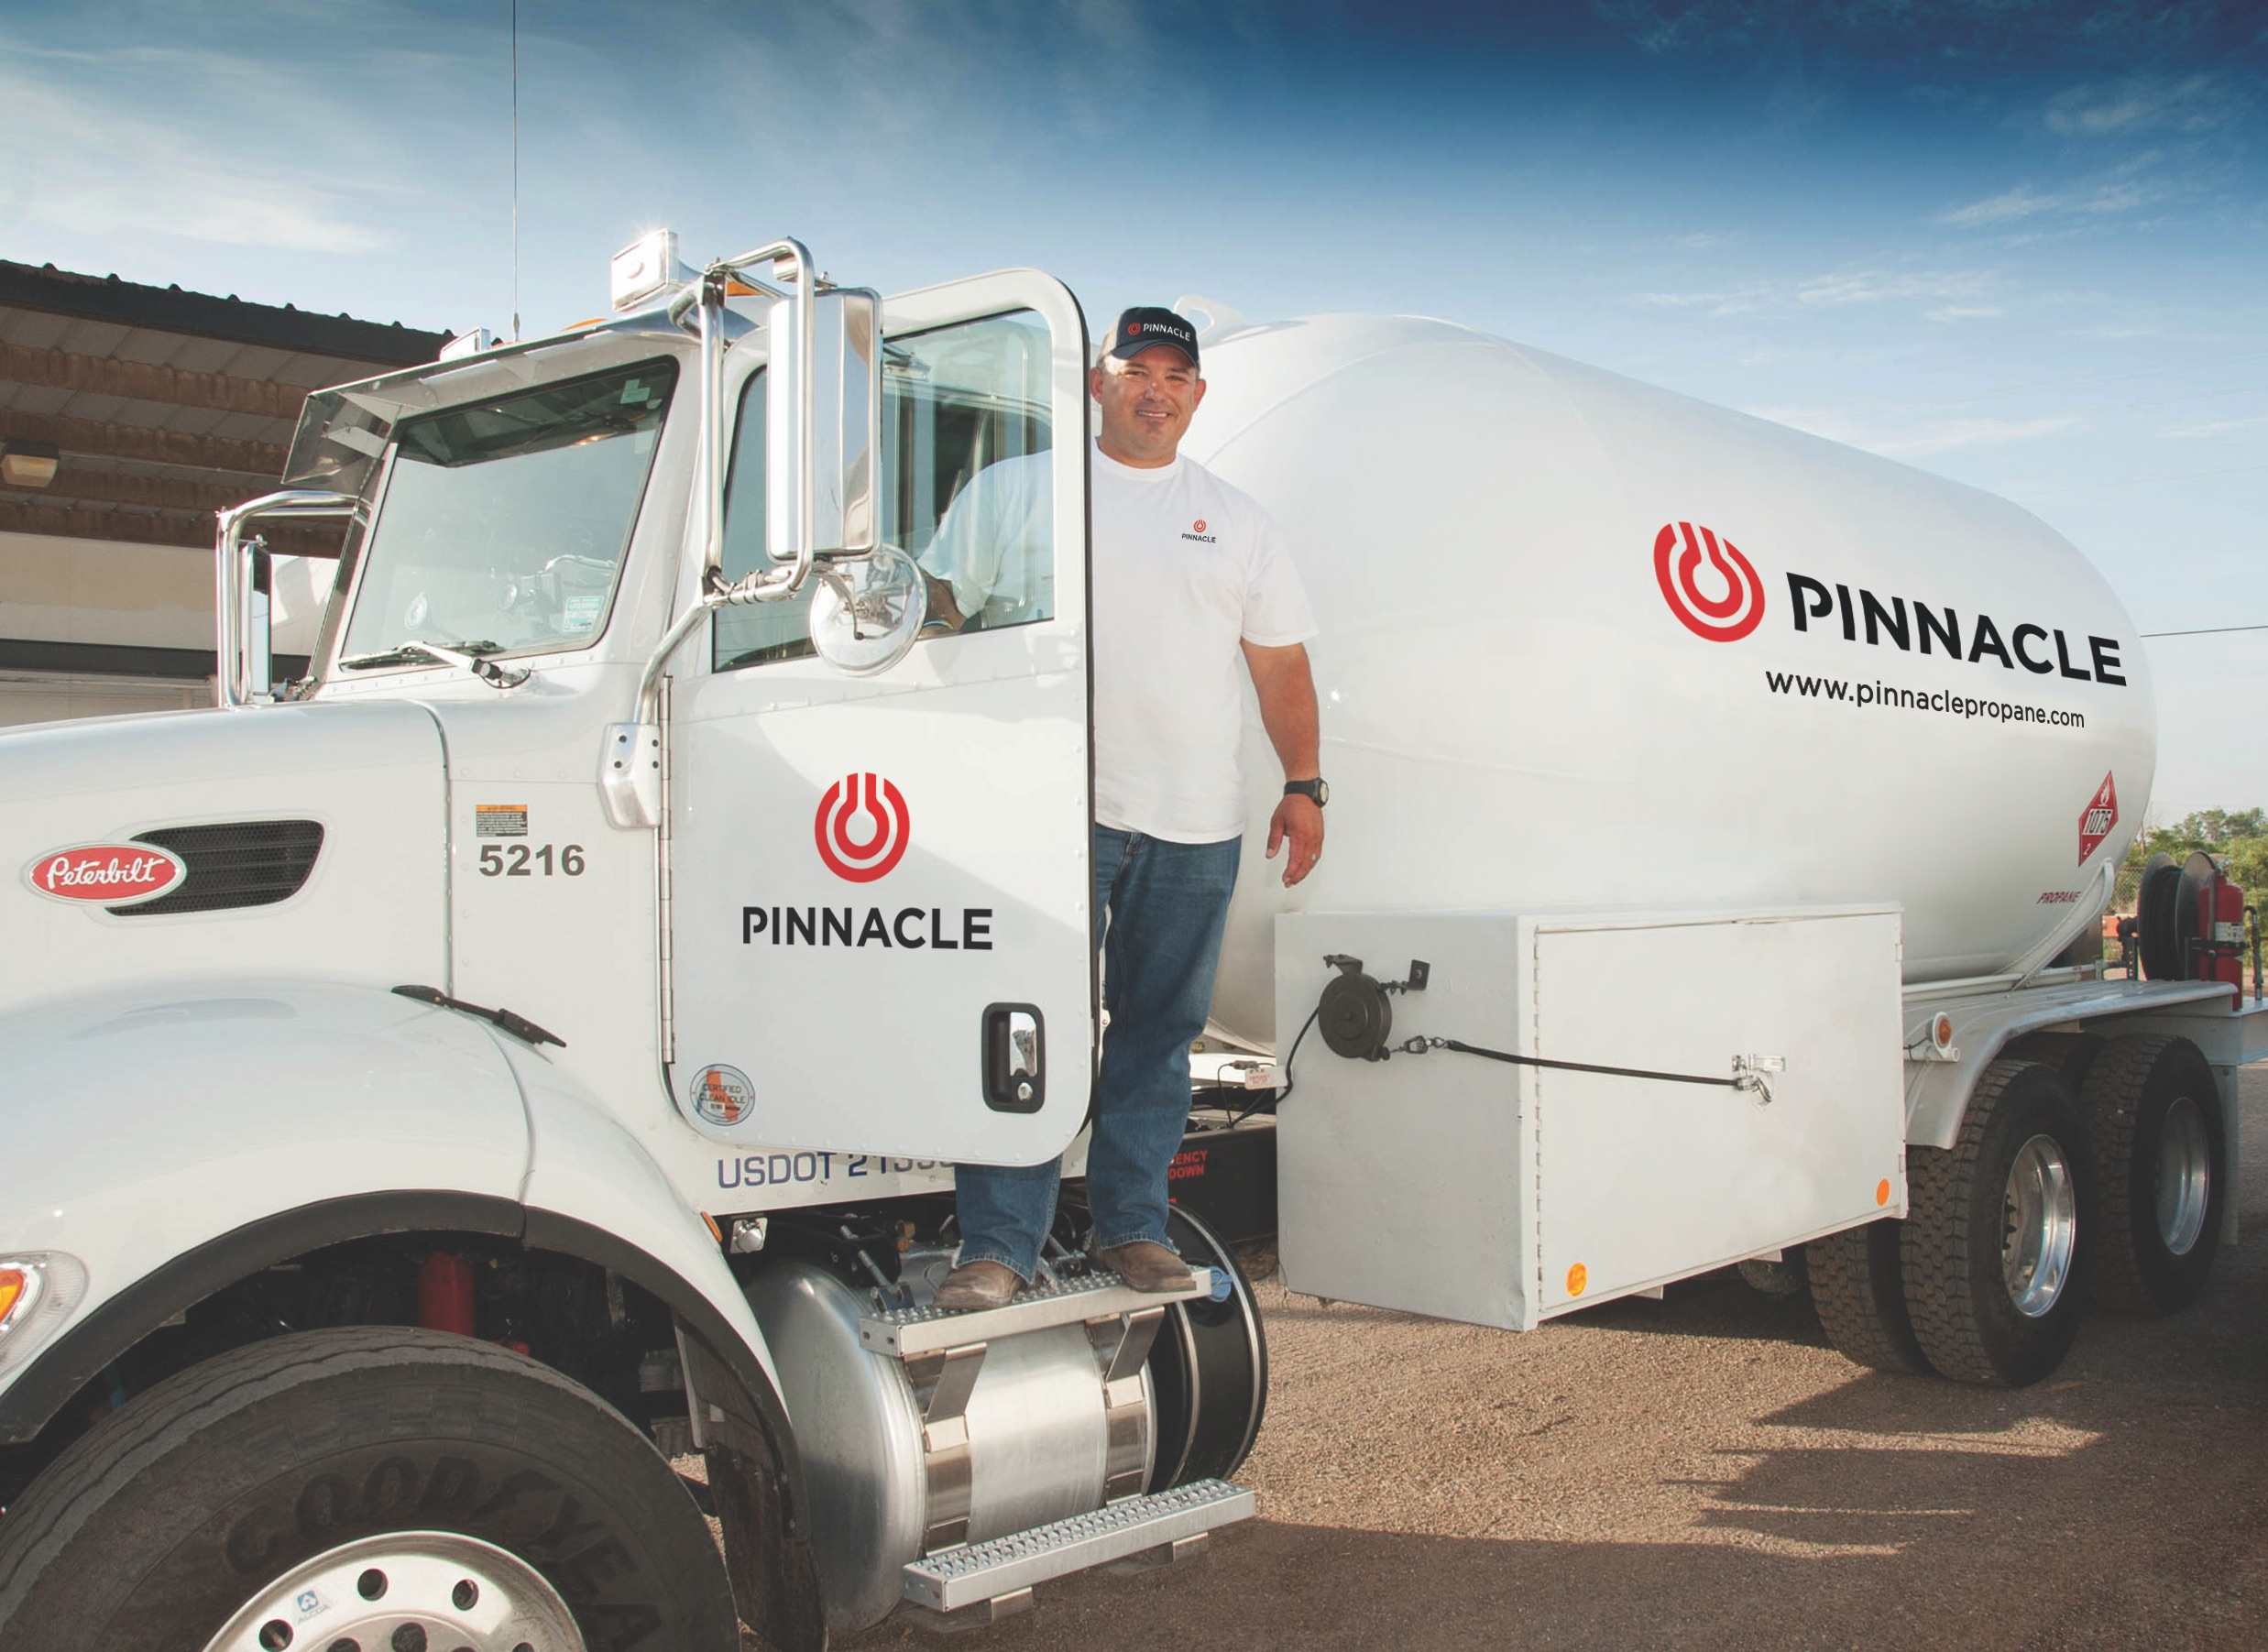 Pinnacle truck SHV